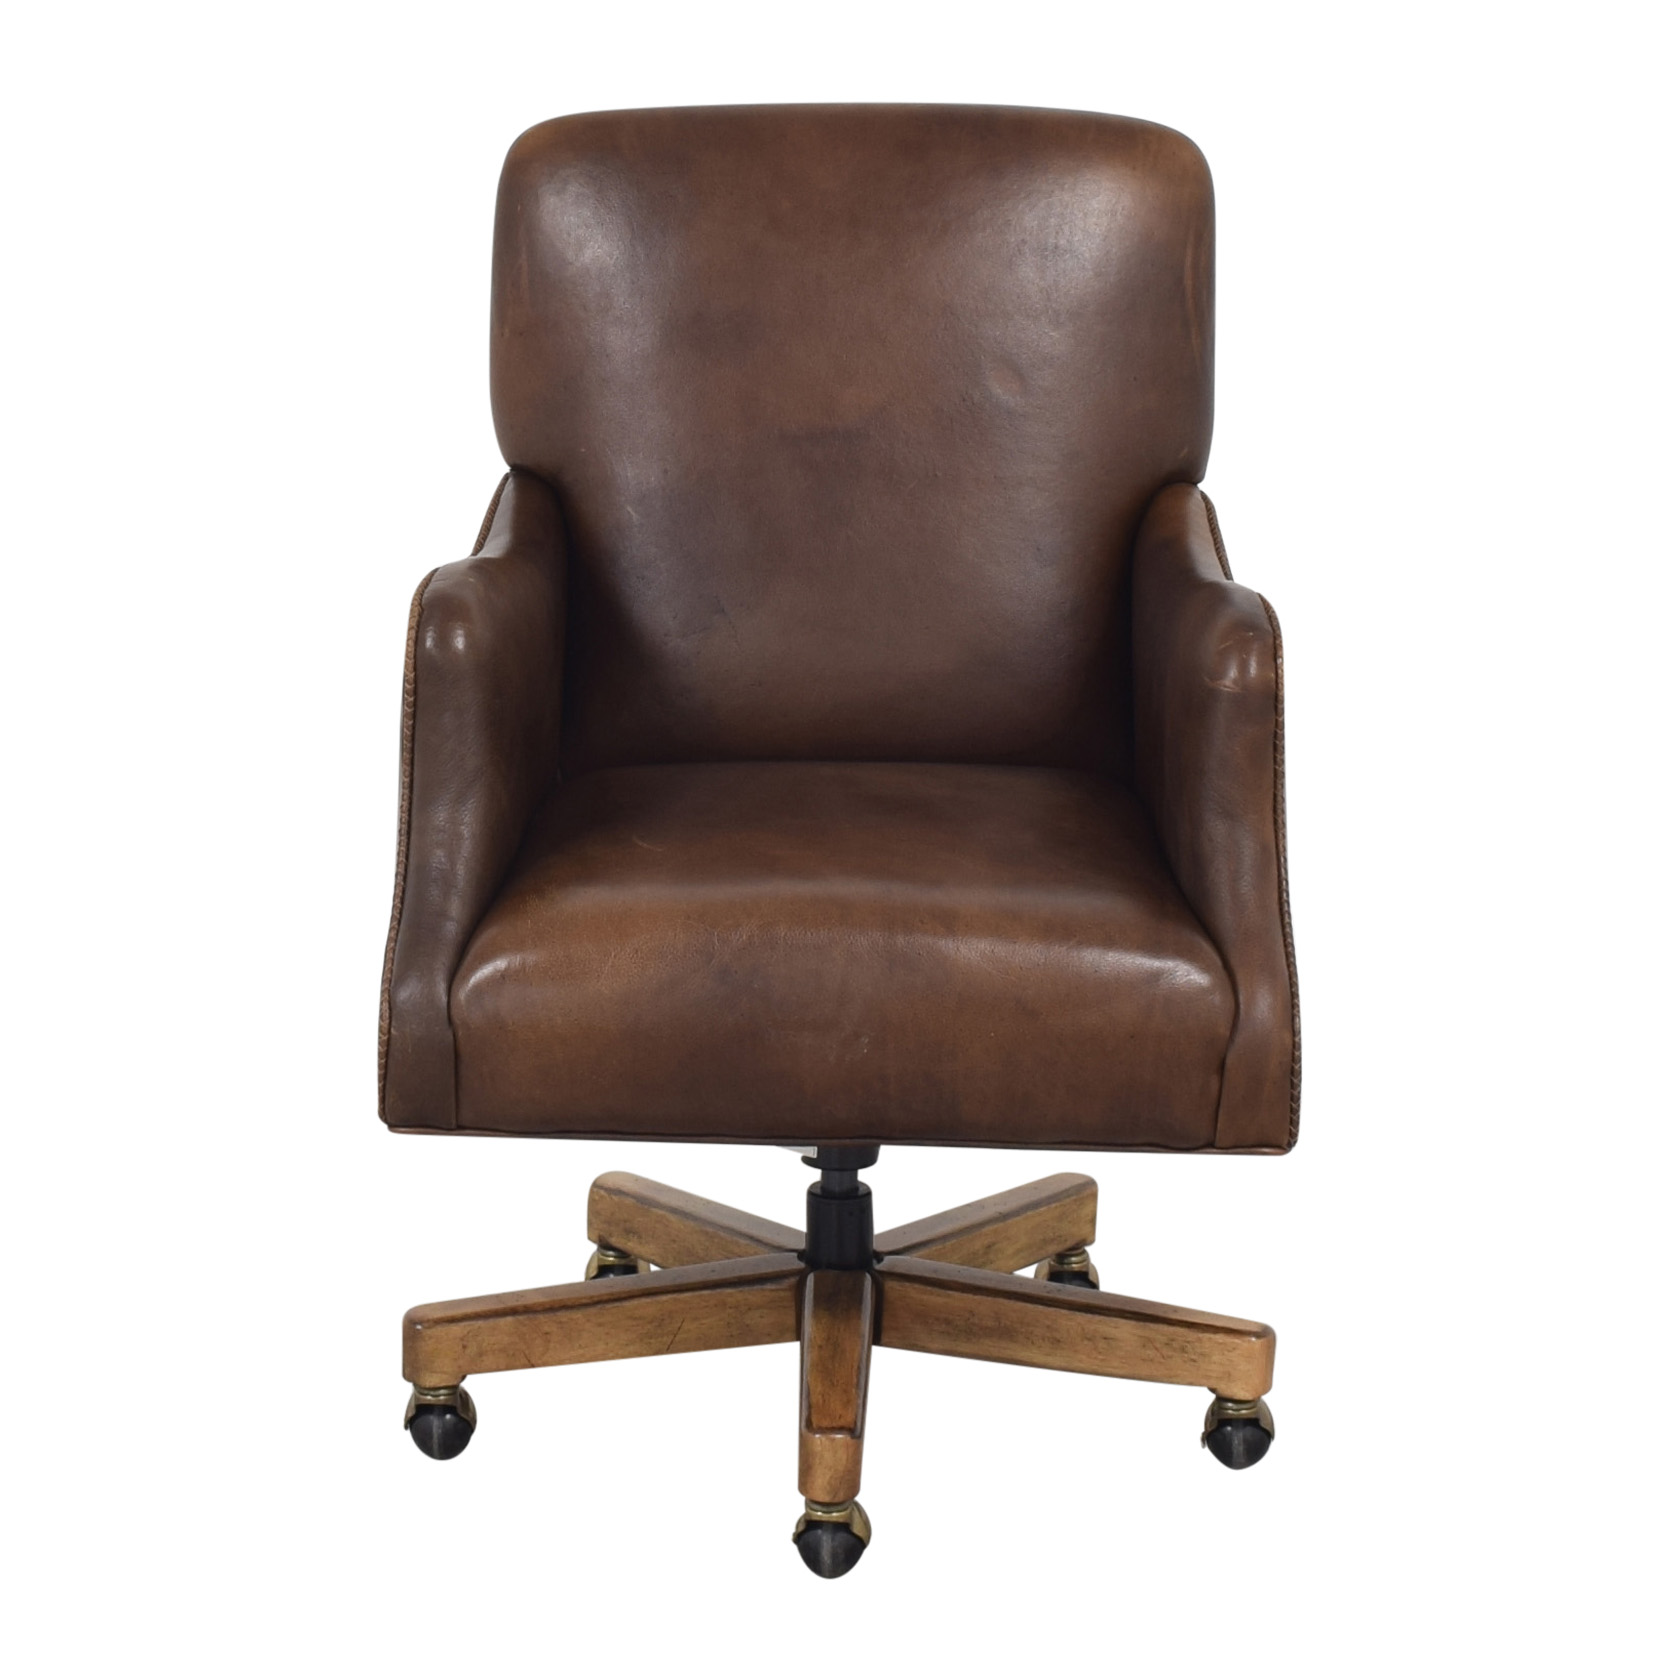 Hooker Furniture Hooker Furniture Office Chair price